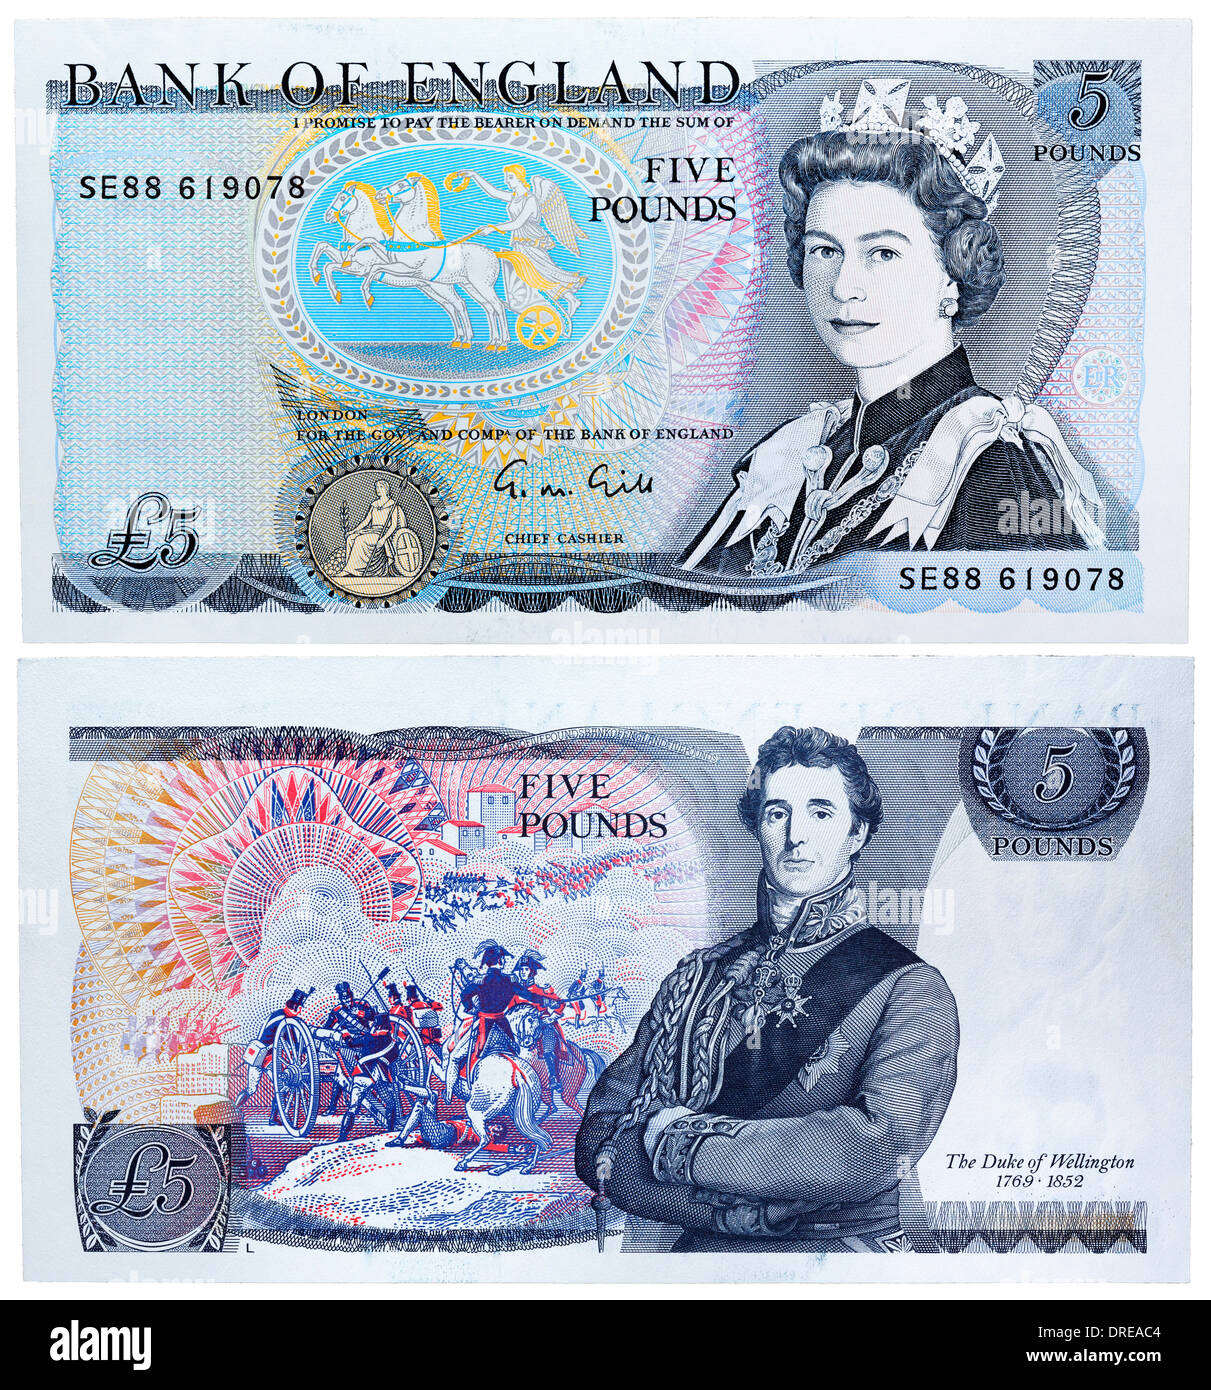 5 Pounds banknote, Queen Elizabeth II and Duke of Wellington, UK, 1988 - Stock Image